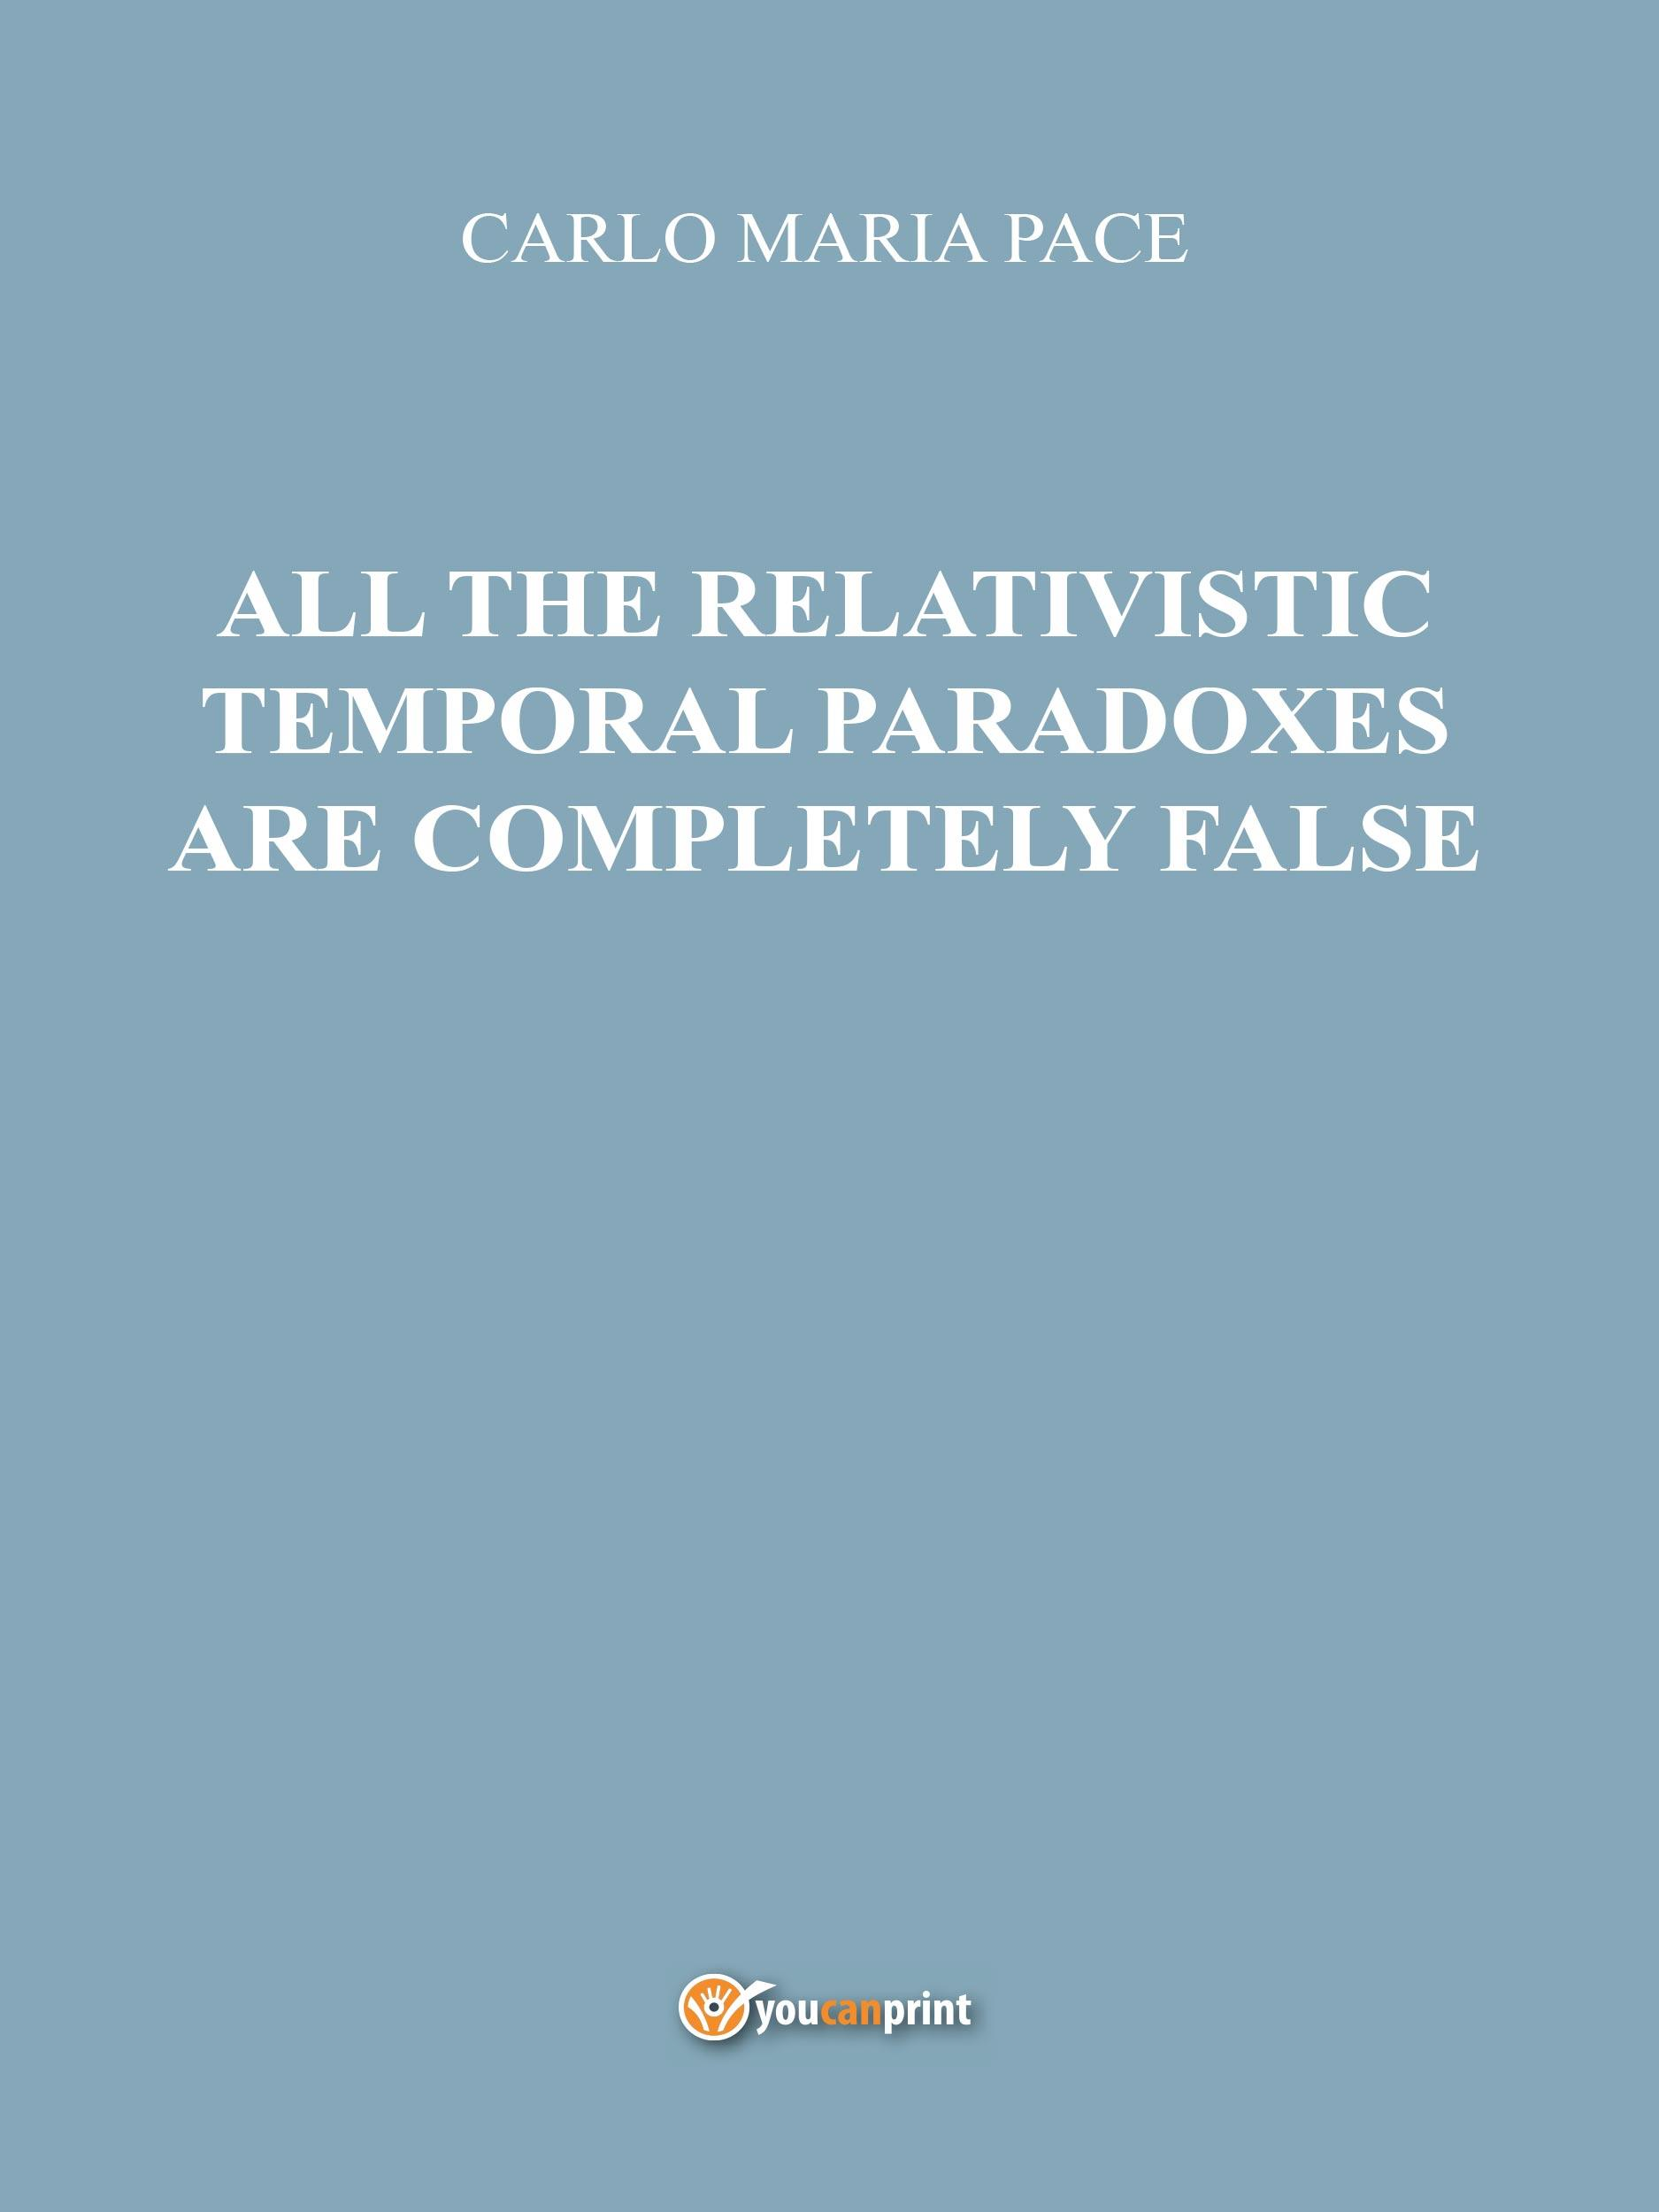 All the relativistic temporal paradoxes are completely false